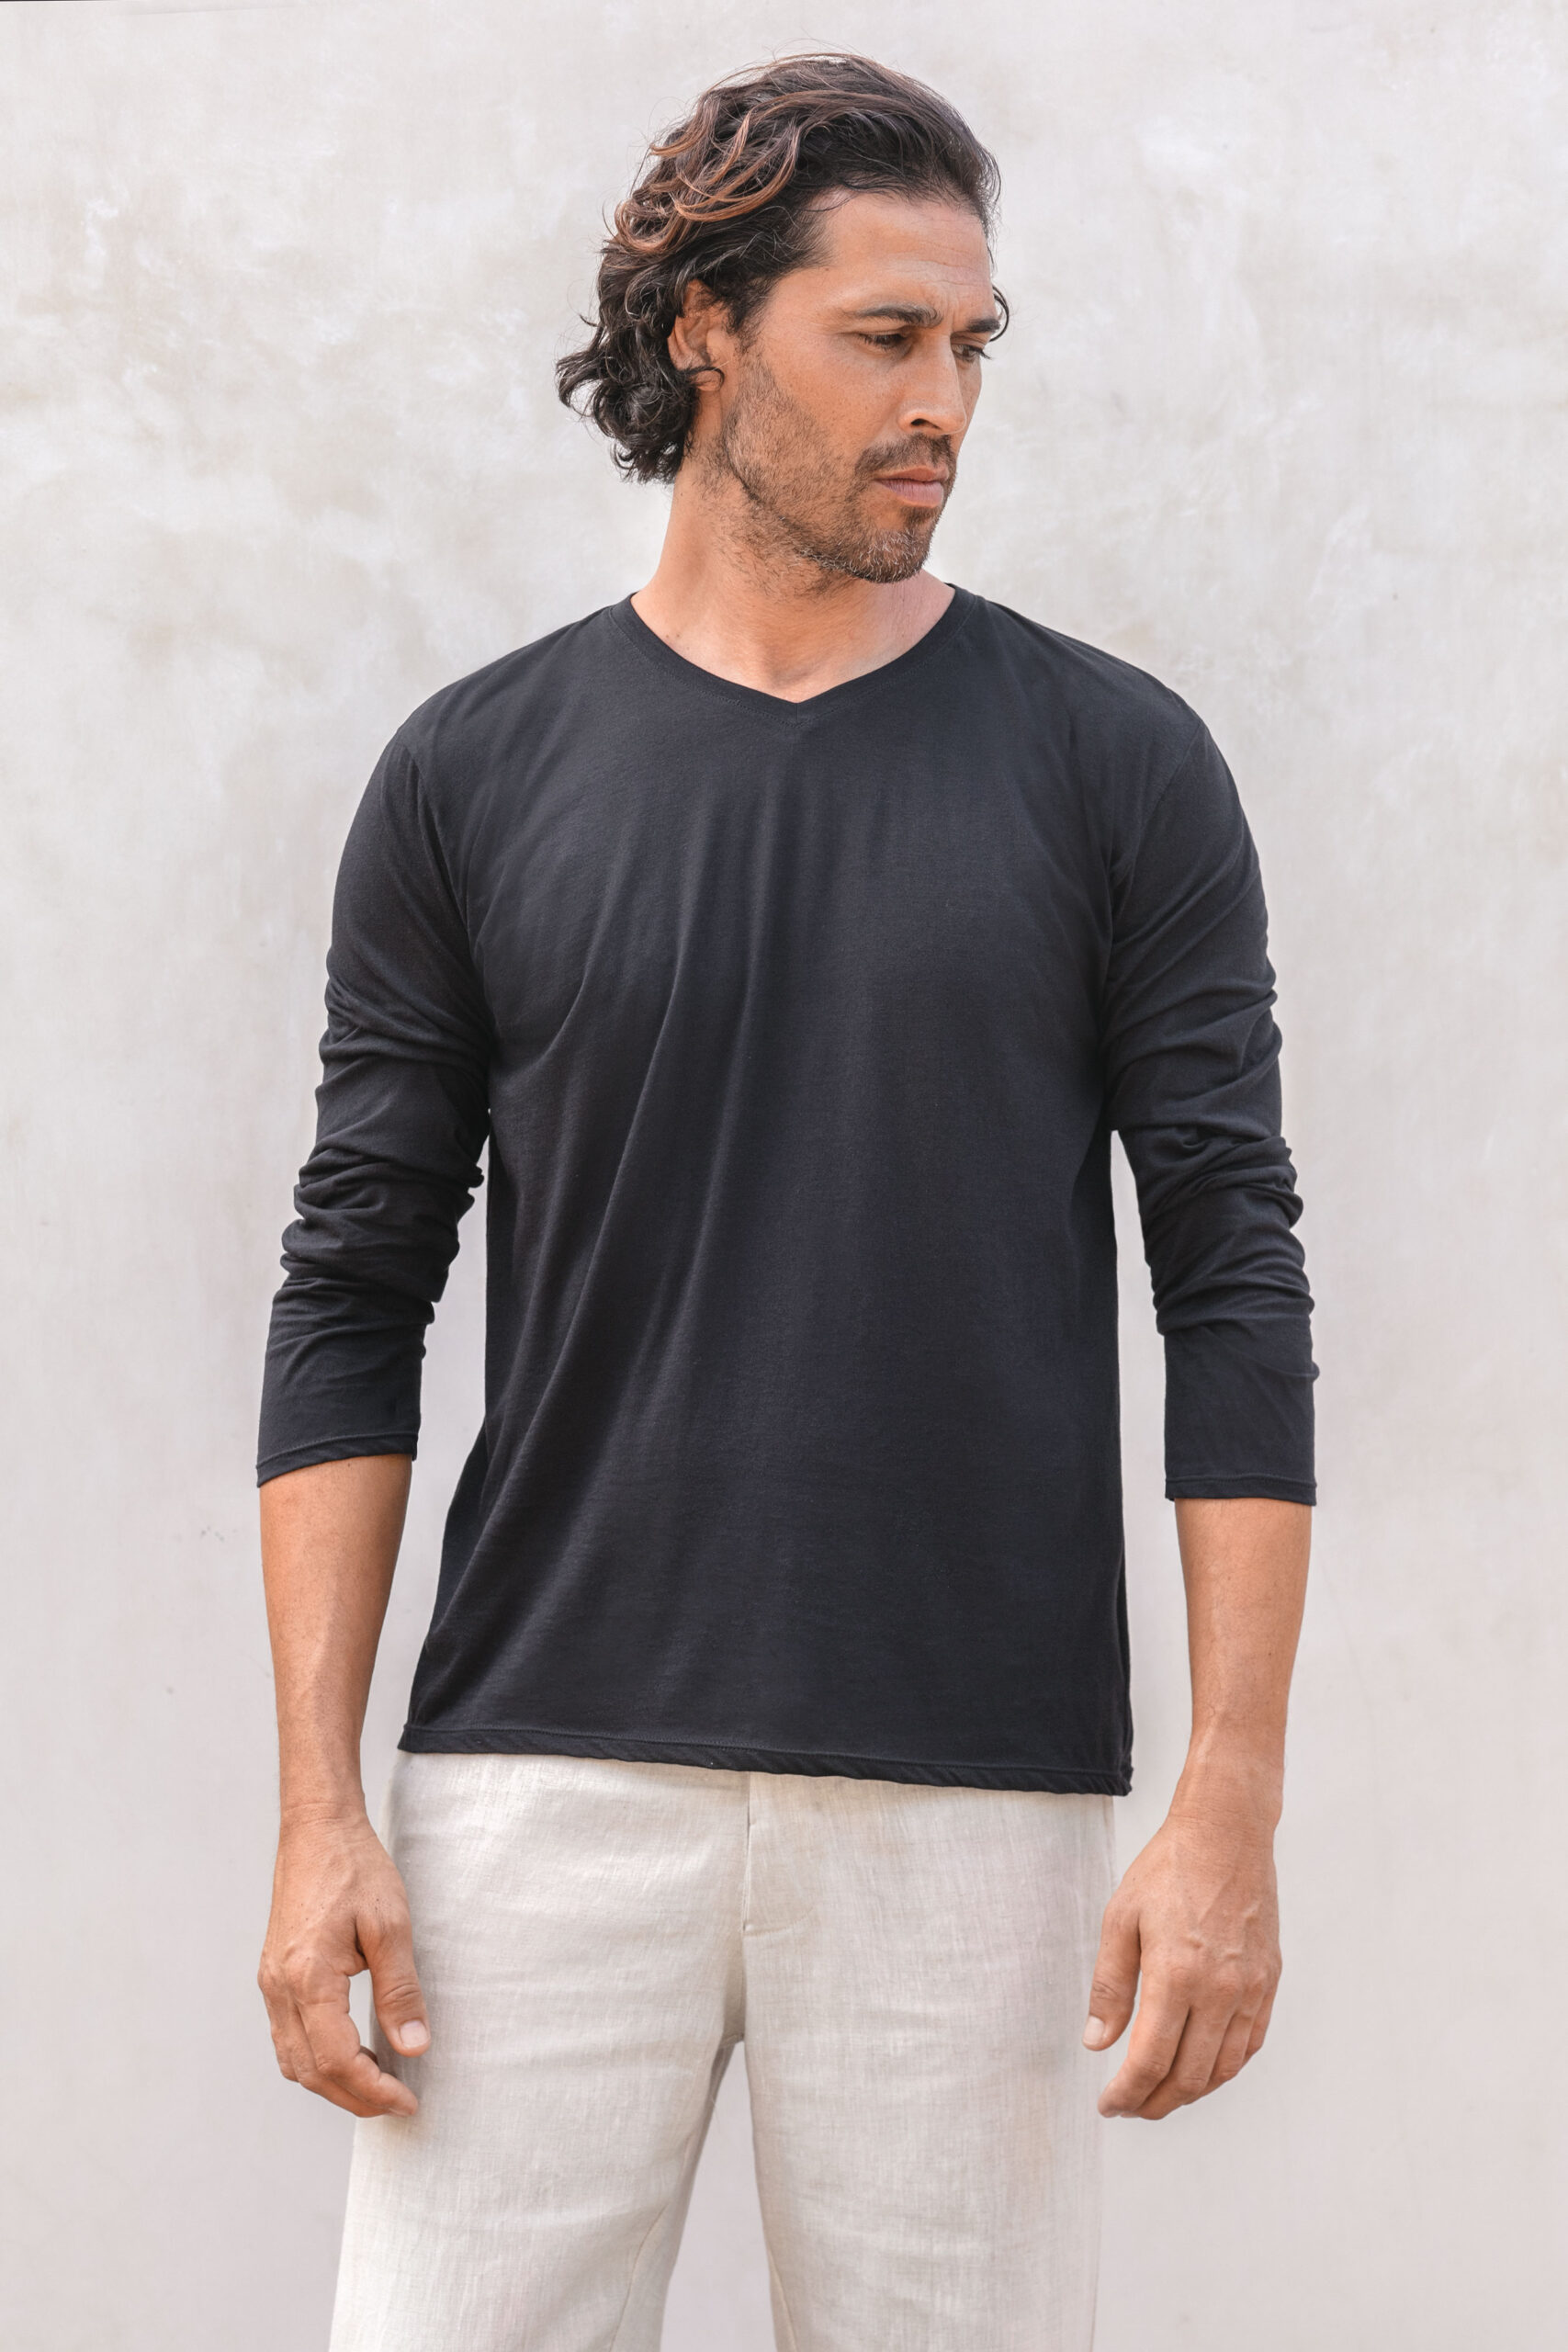 Muyal pima cotton vneck teeshirt